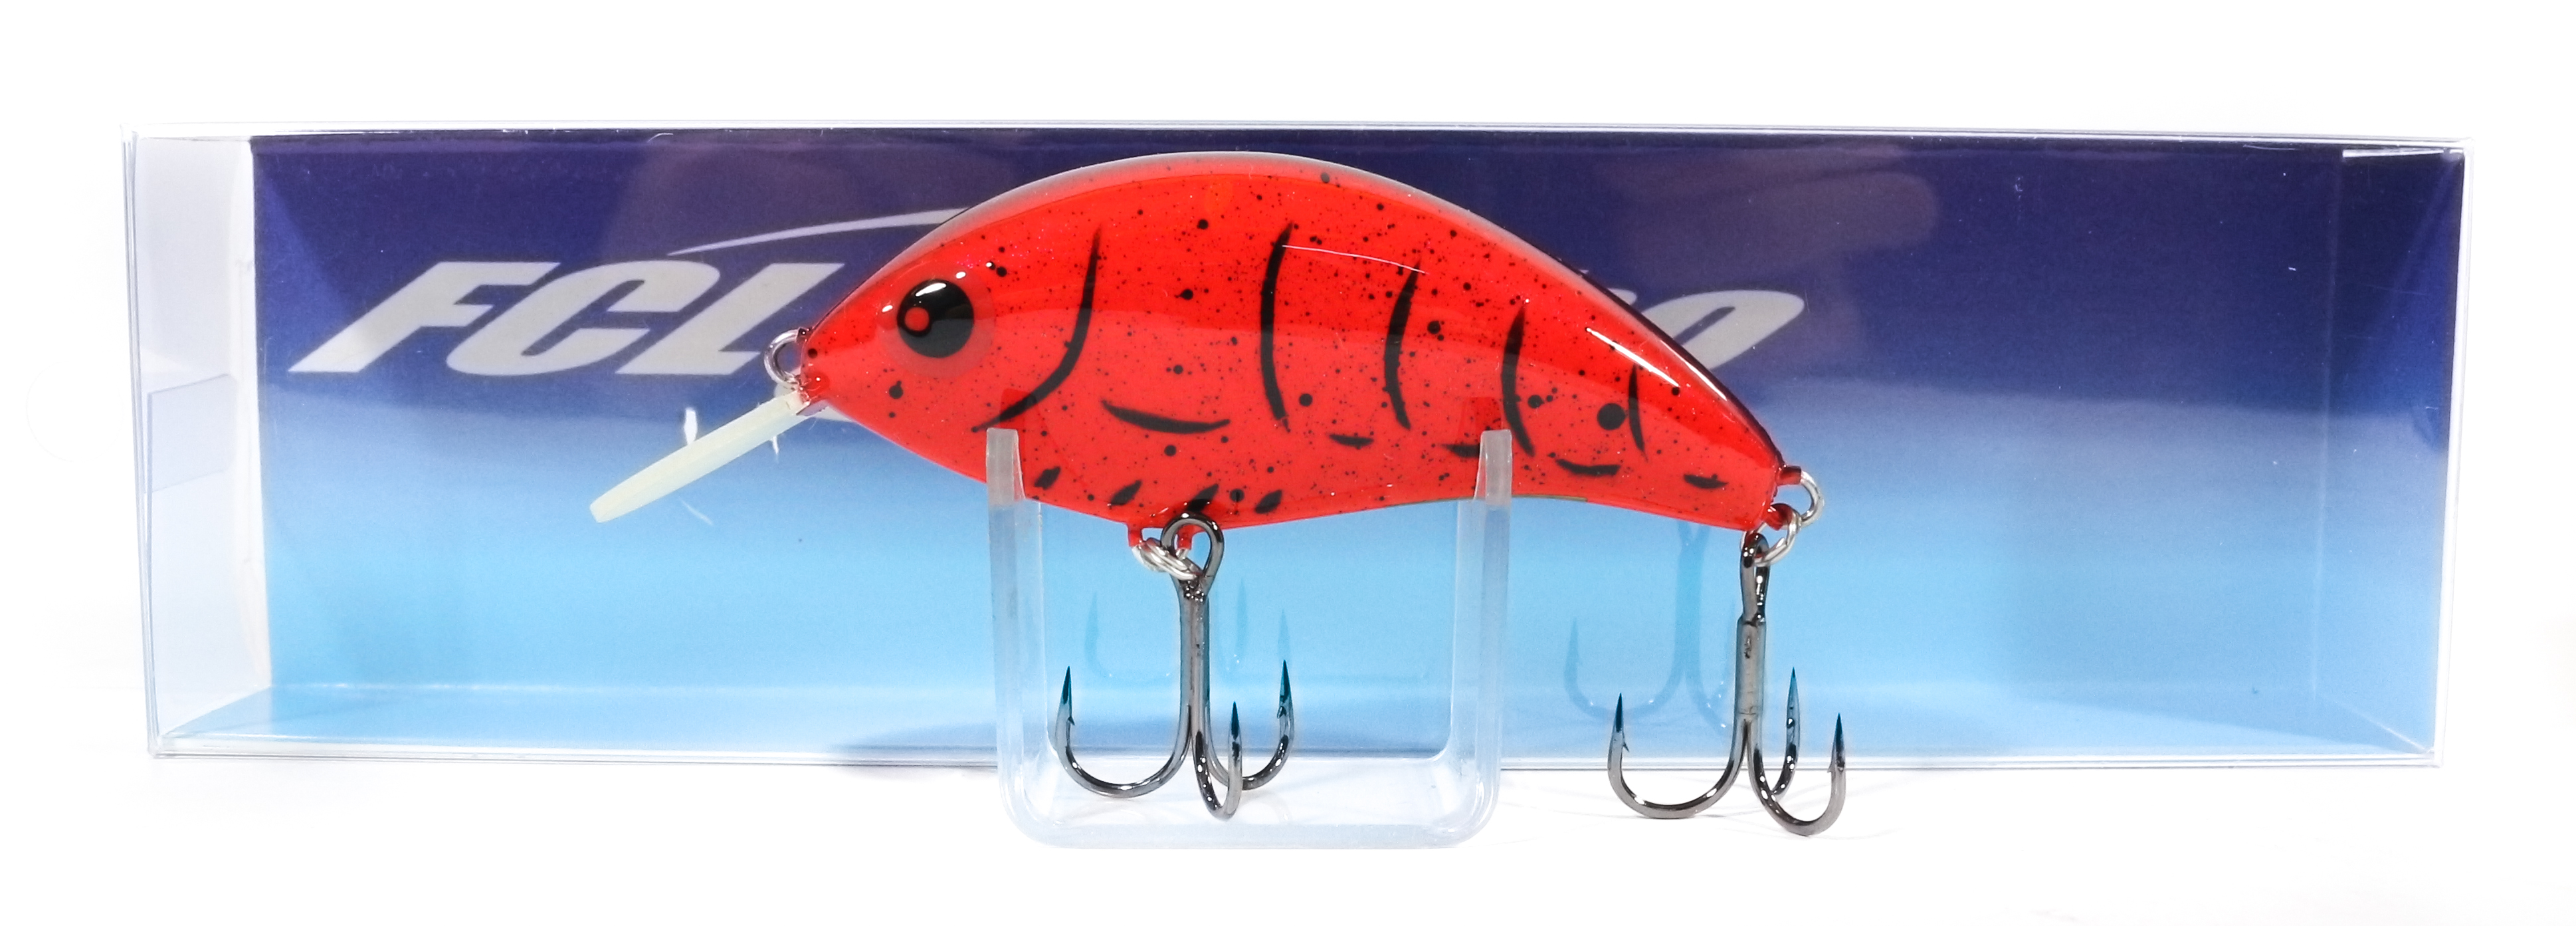 FCL Labo Lure Keshal 63 Floating Lure RC (4426)